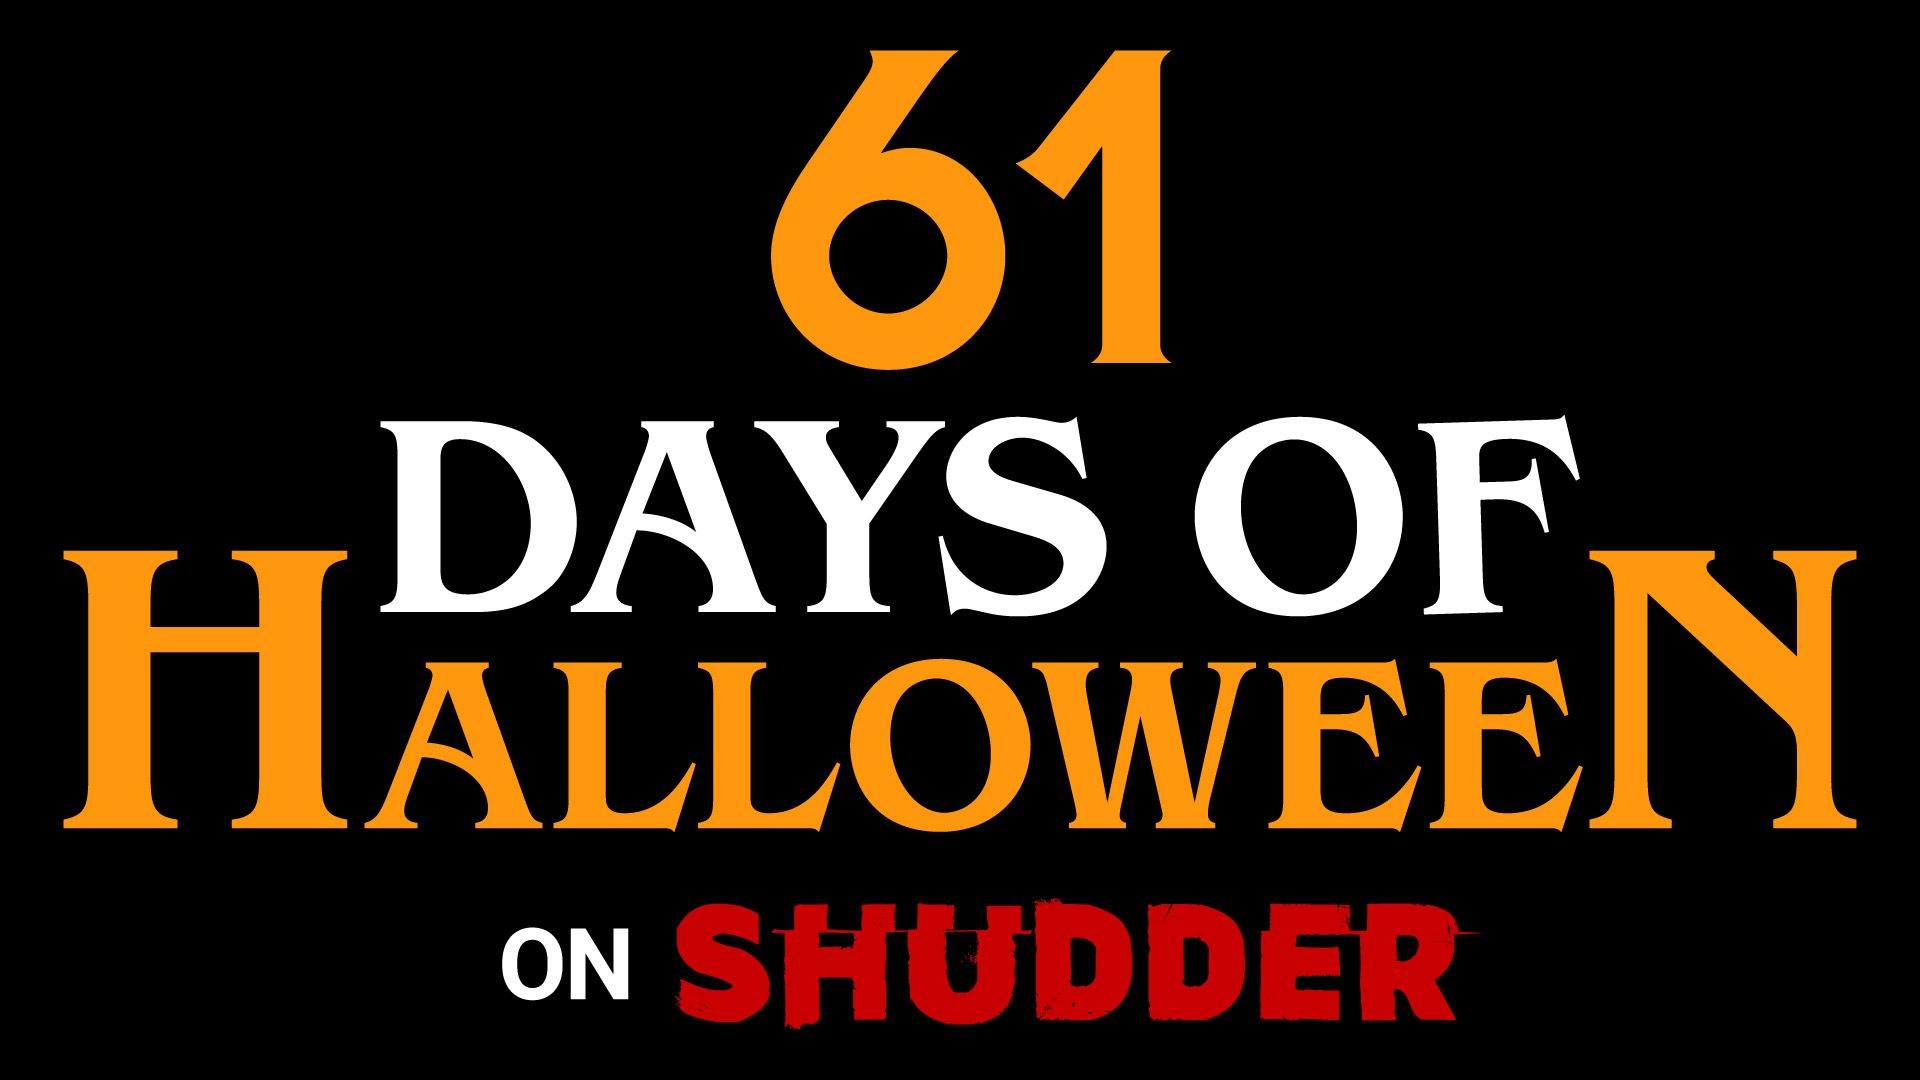 Shudder Takes Over September With 61 Days Of Halloween